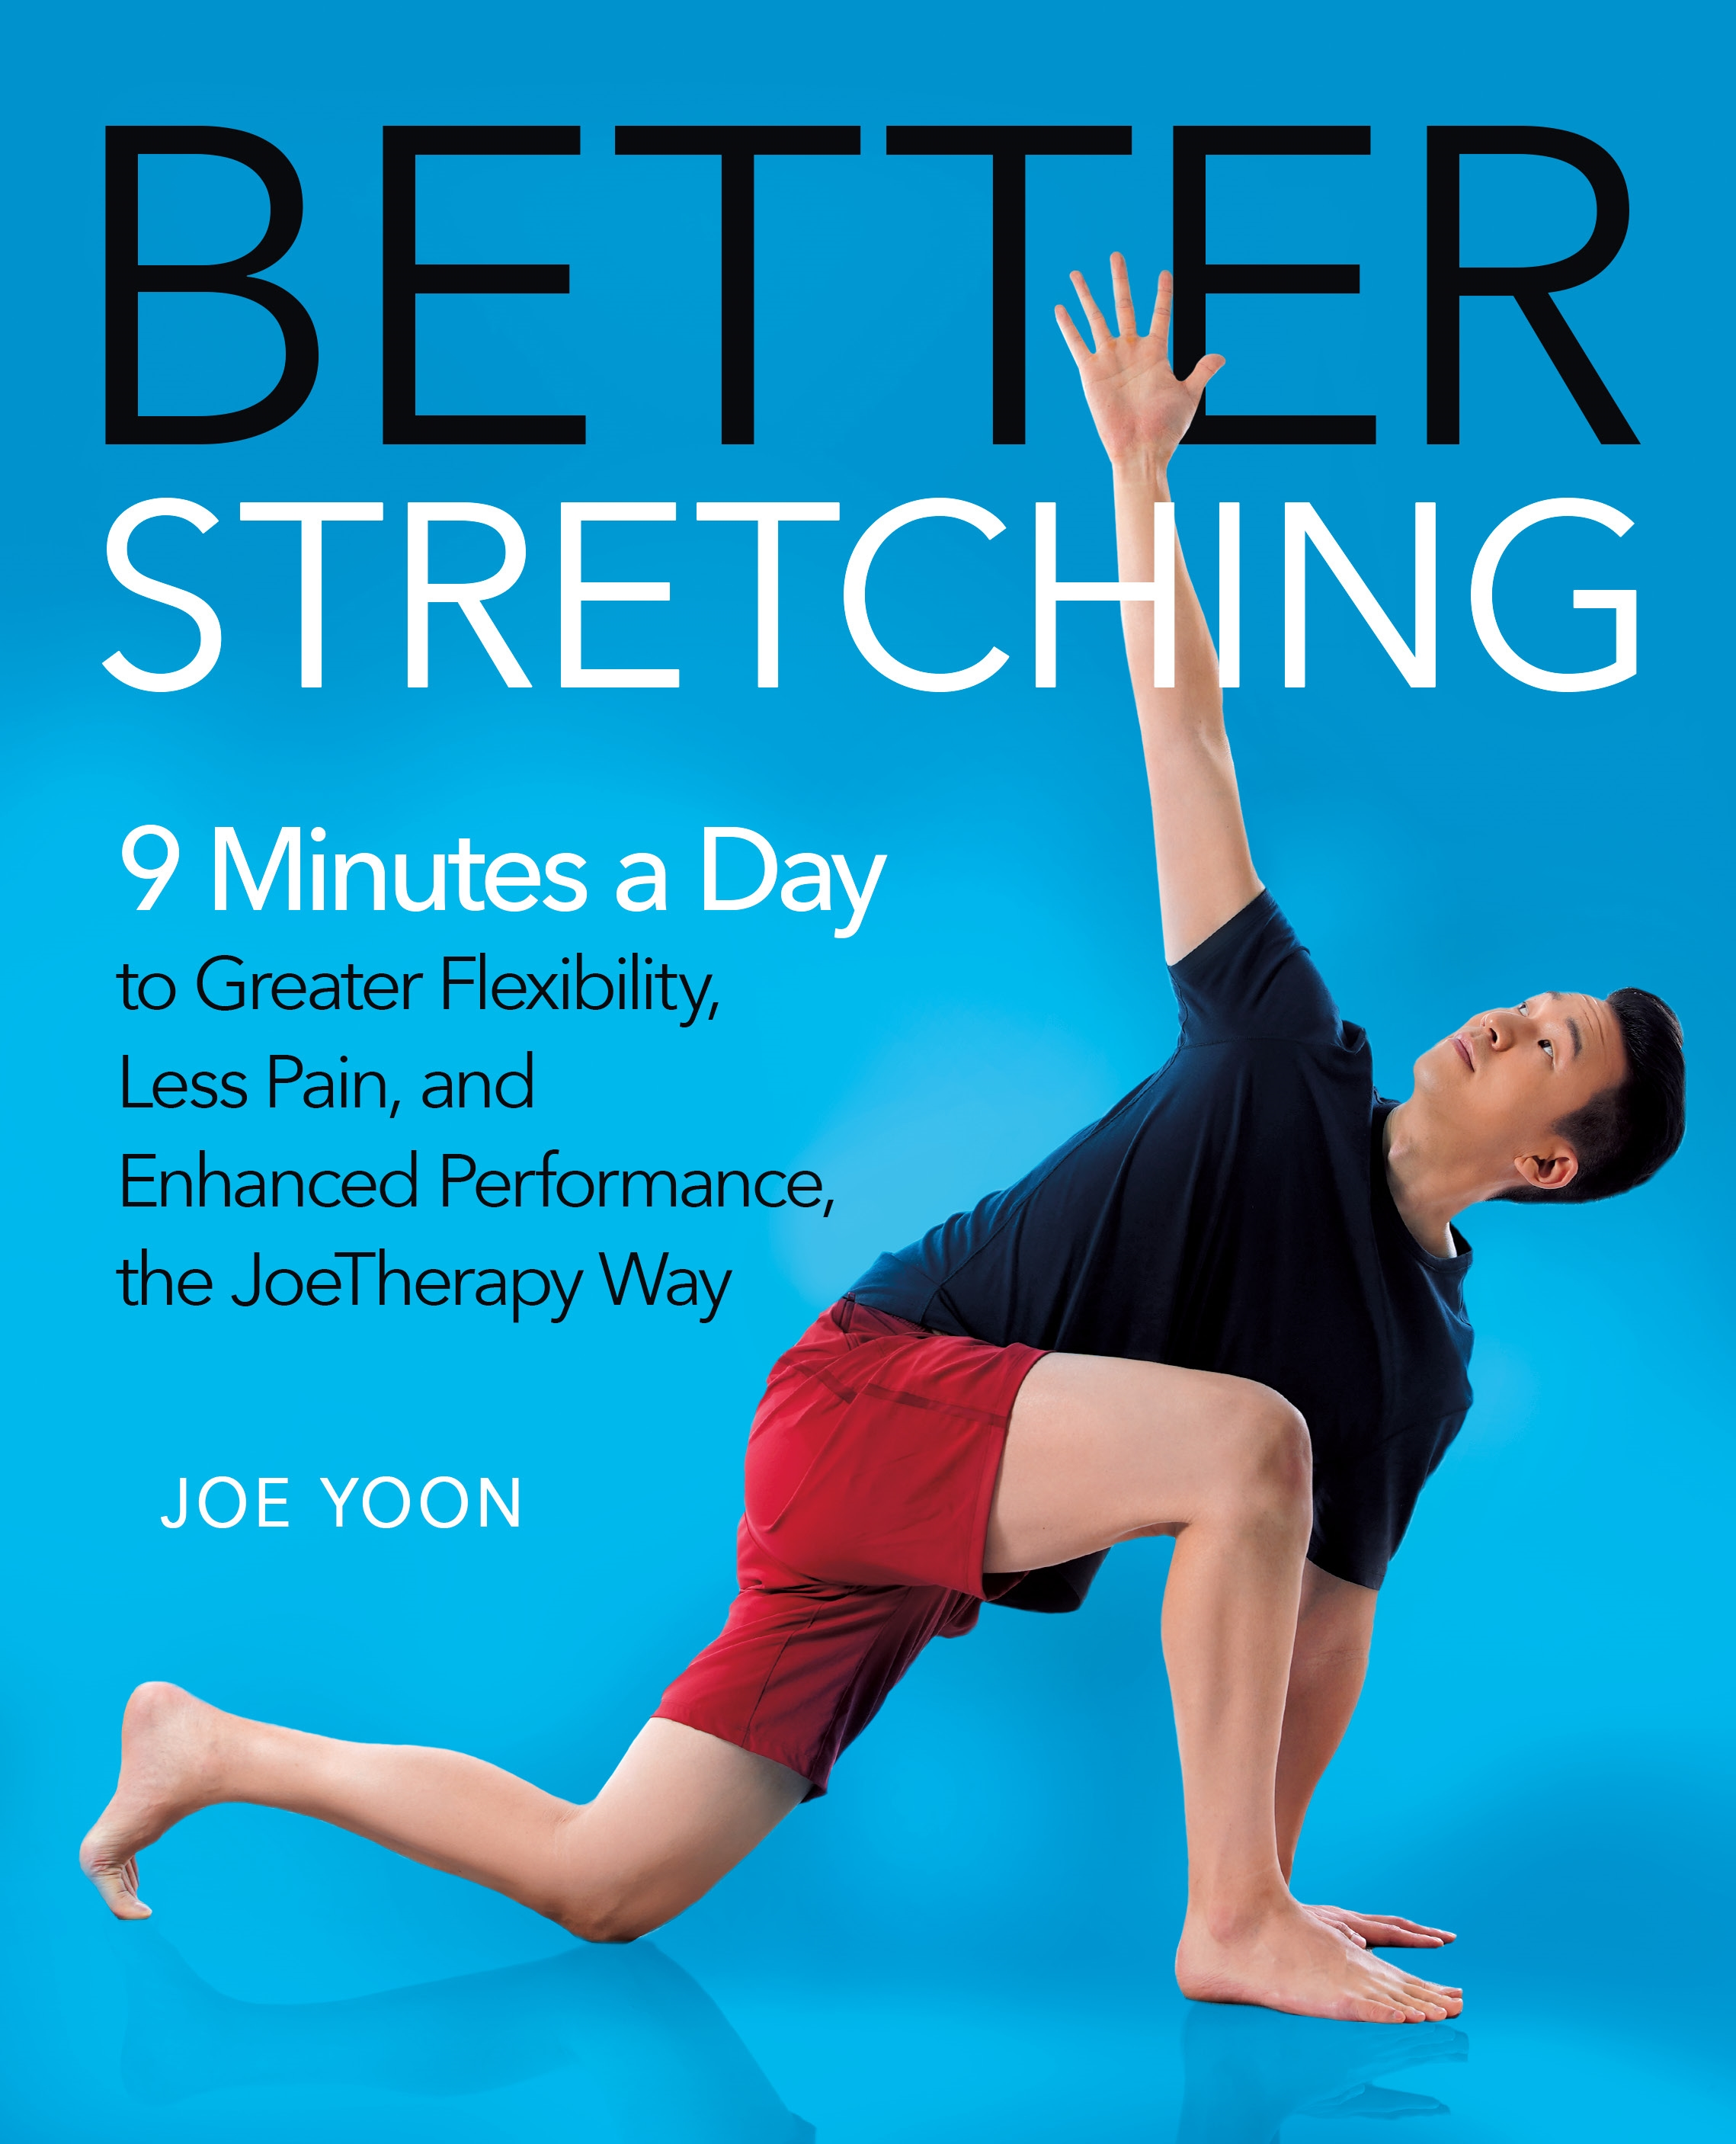 Better Stretching 9 Minutes a Day to Greater Flexibility, Less Pain, and Enhanced Performance, the JoeTherapy Way